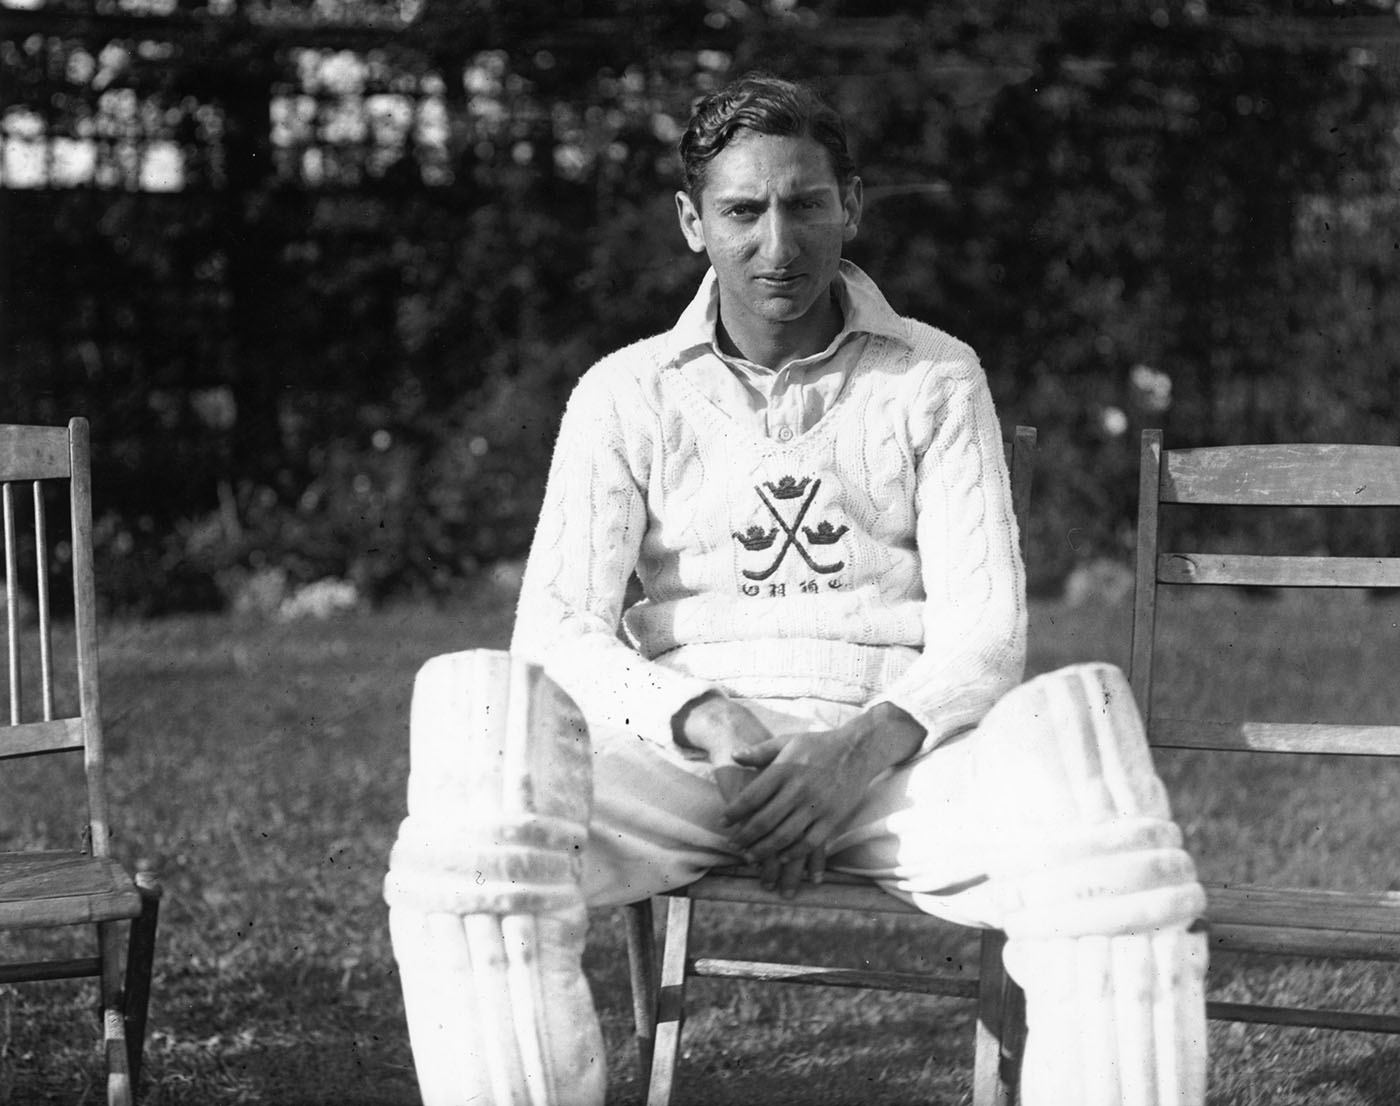 Iftikar Ali Khan Pataudi remains the only man to play for both England and India